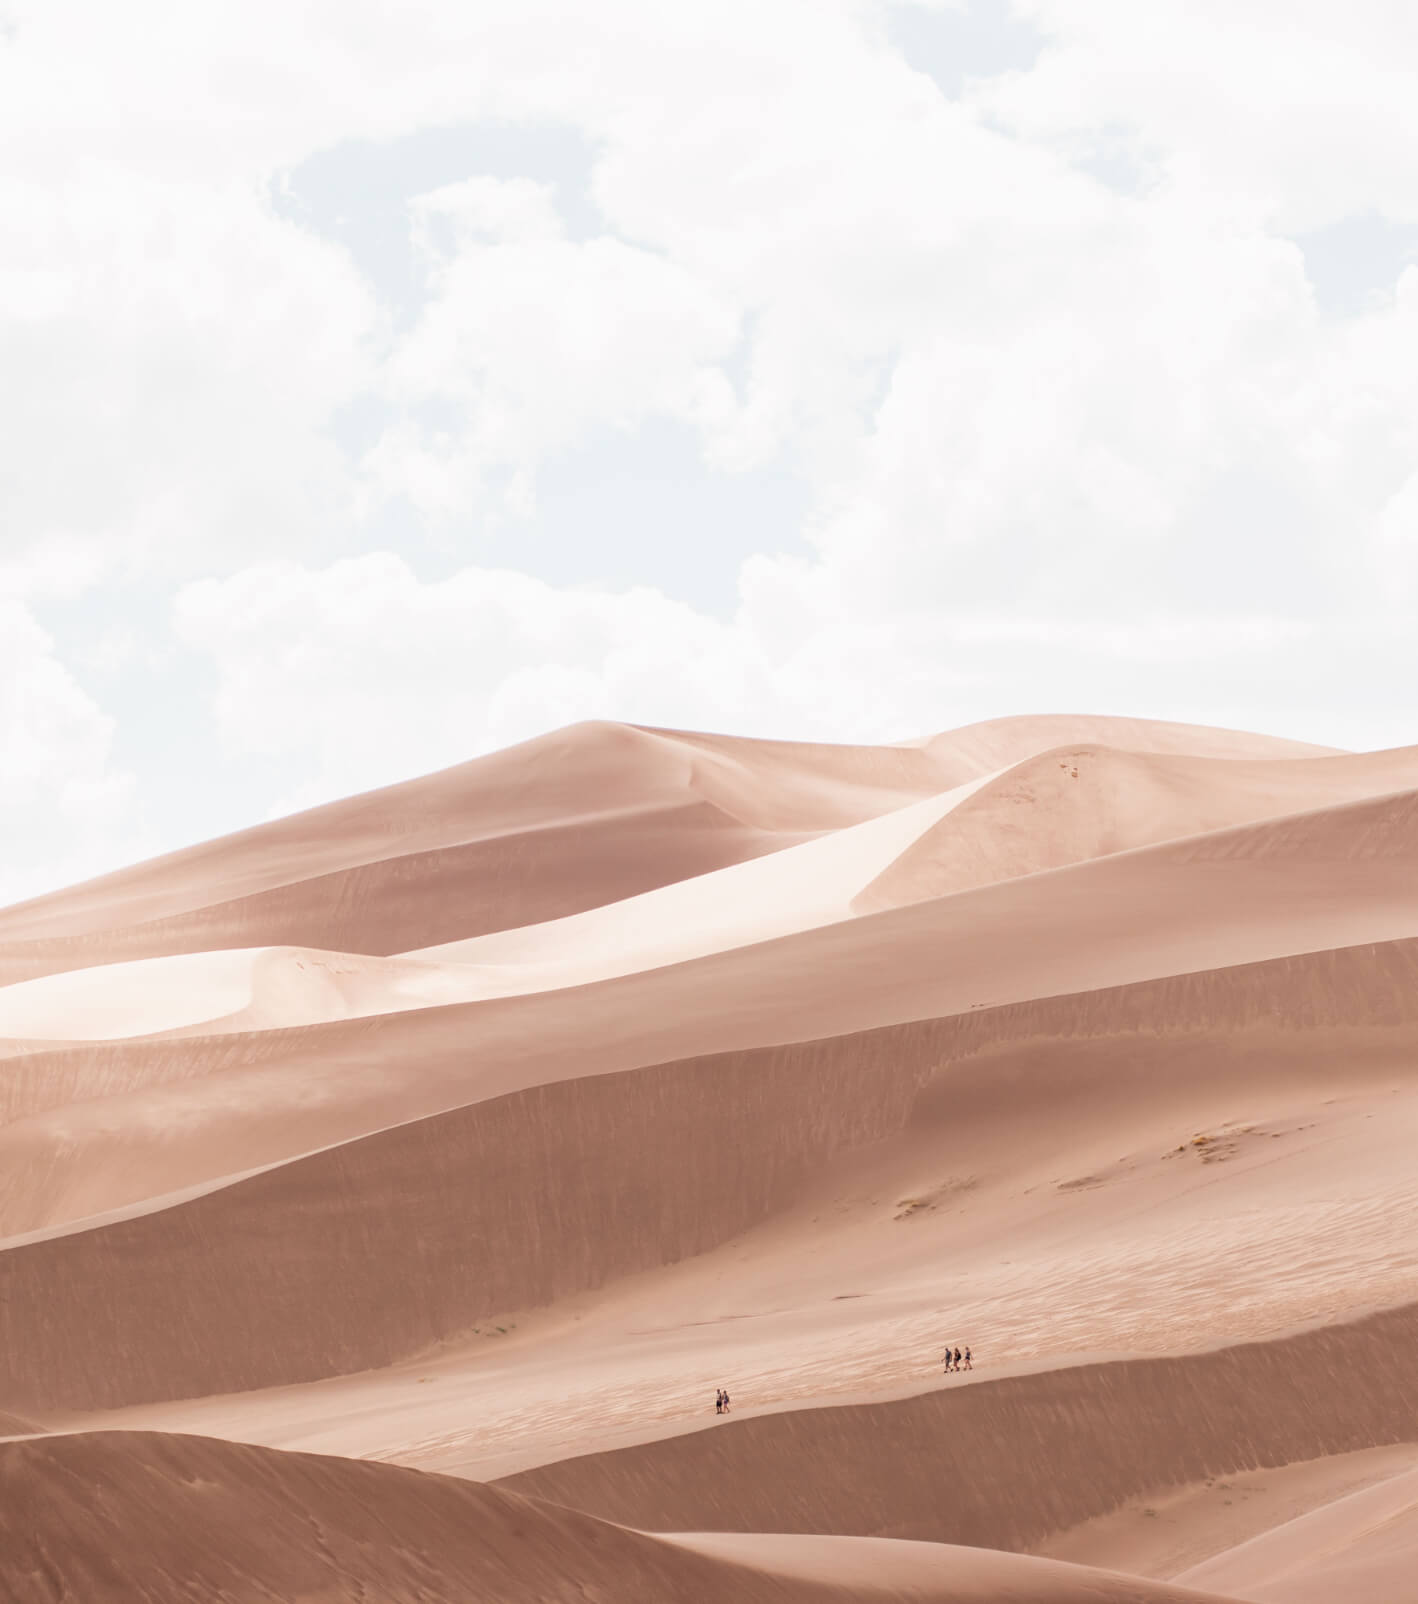 A hazy white sky with a blueish tint gives way to a sculptural section of desert sand dunes. On the horizon of the tallest dune you can make out the silhouette of 3 people.